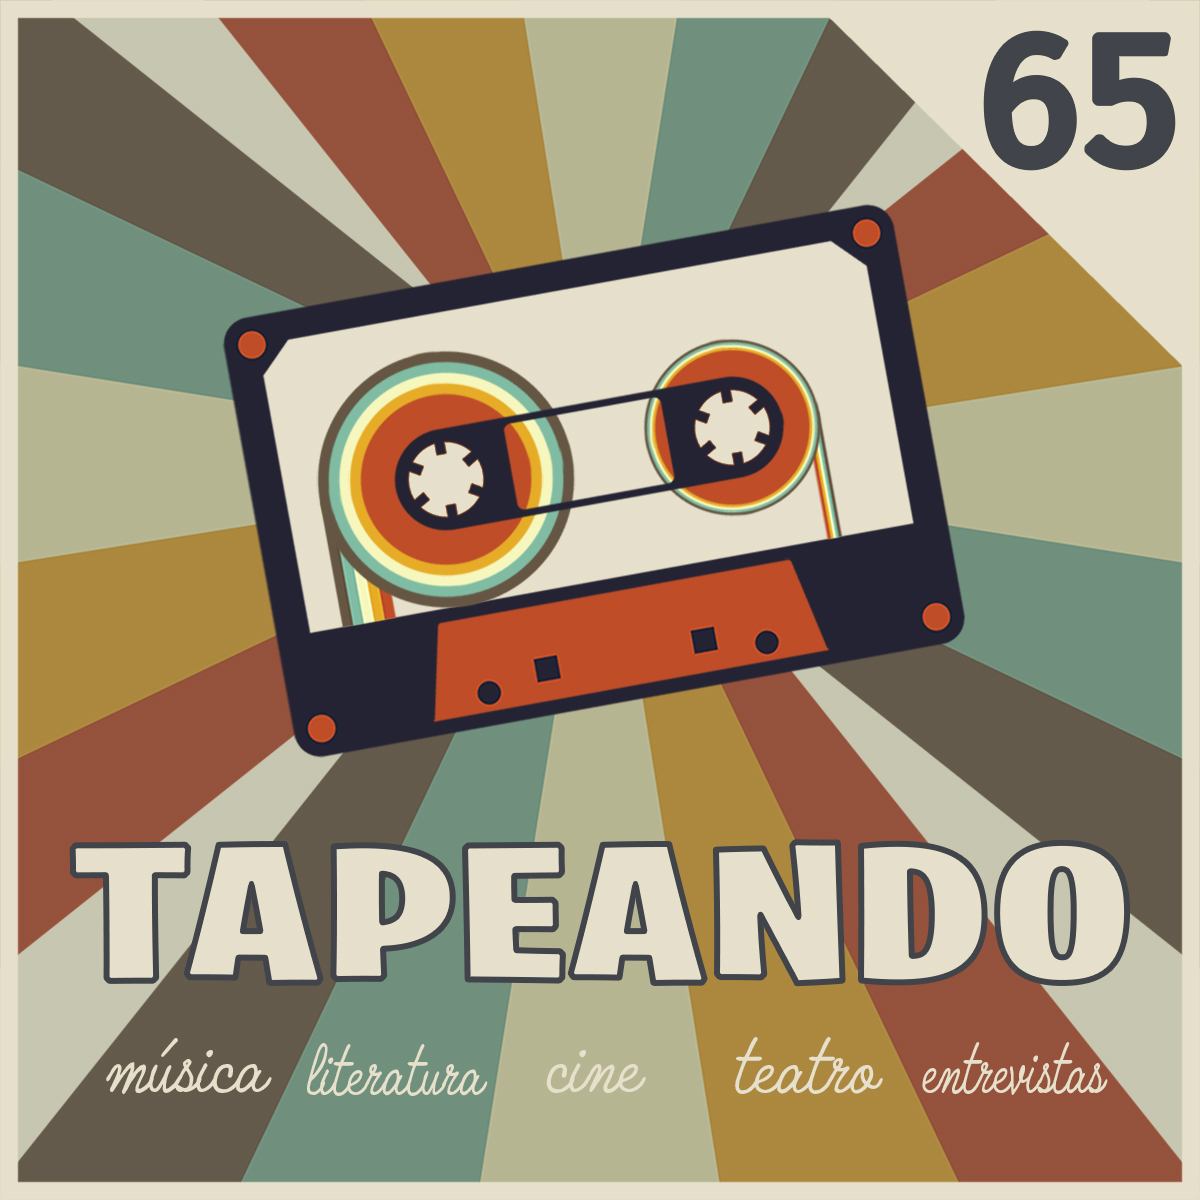 Tapeando Radio, Tapeandoradio, Tapeando, Radio, Podcast